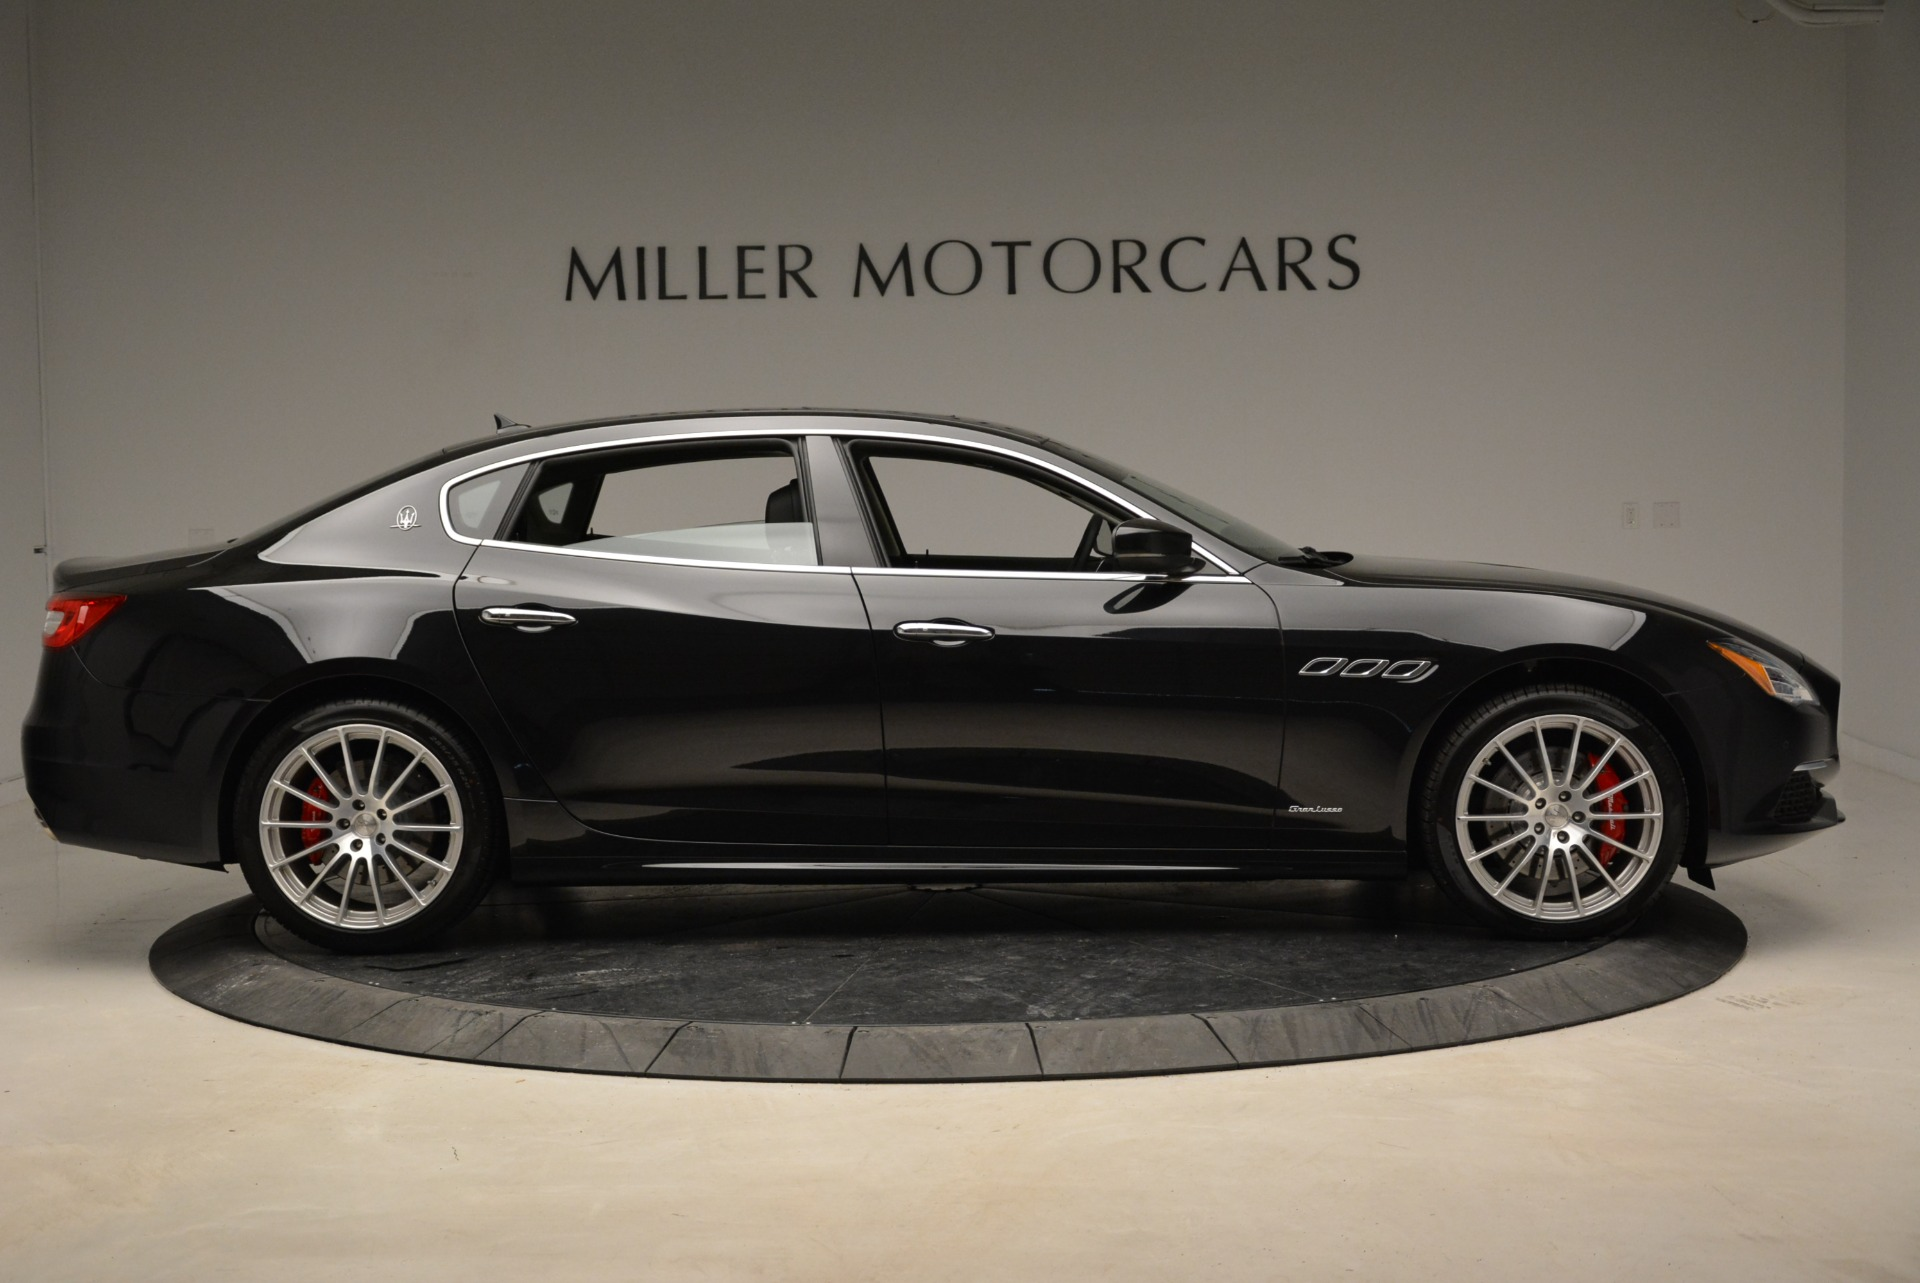 New 2018 Maserati Quattroporte S Q4 GranLusso For Sale In Westport, CT 1705_p9